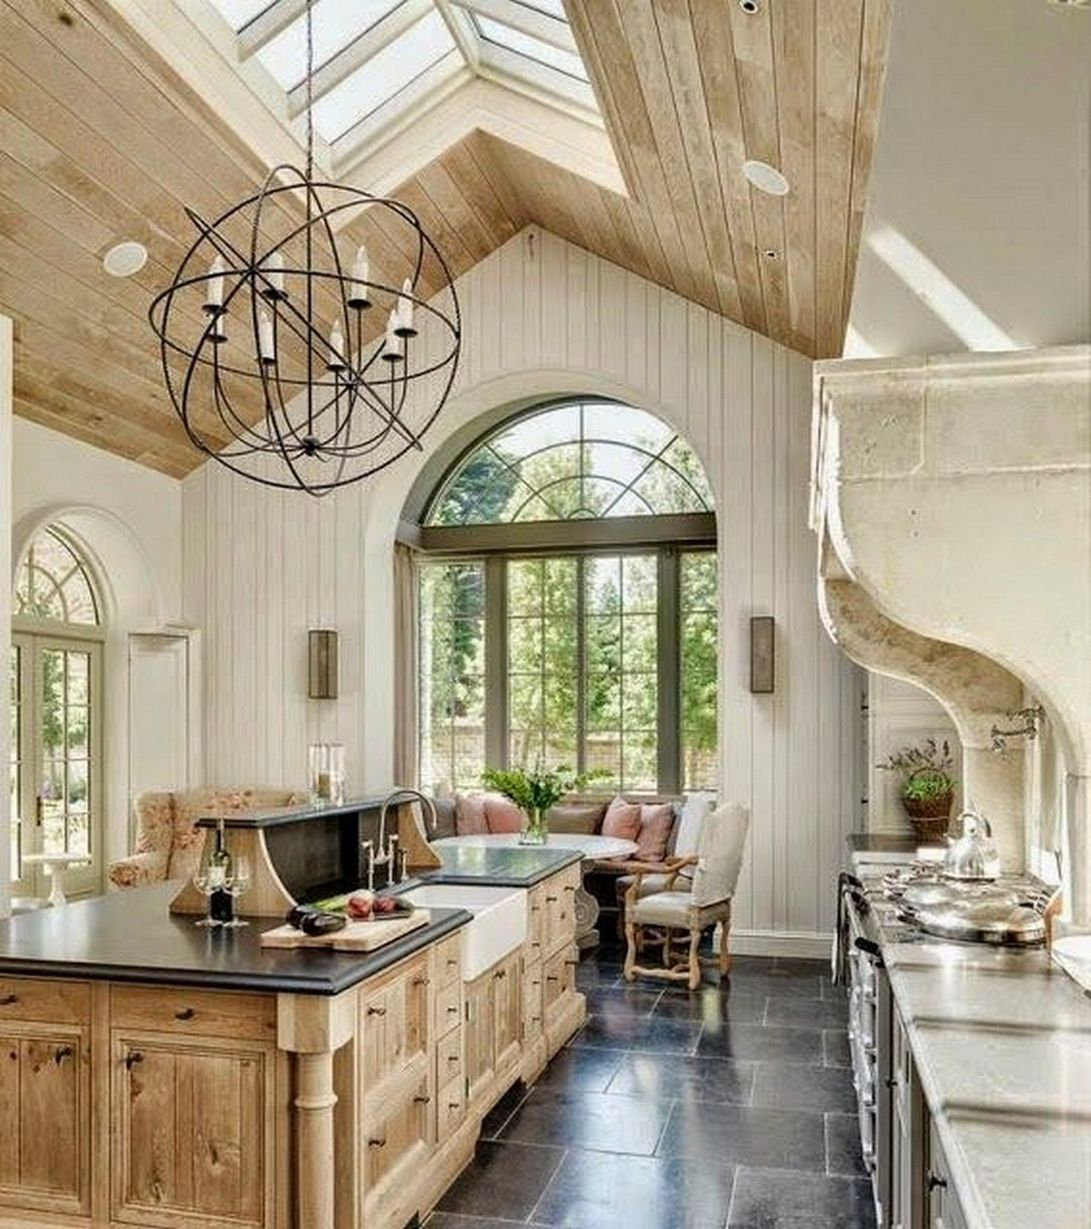 French Kitchen Pictures Pin By Andrea Nunley On Kitchens Country Kitchen Designs